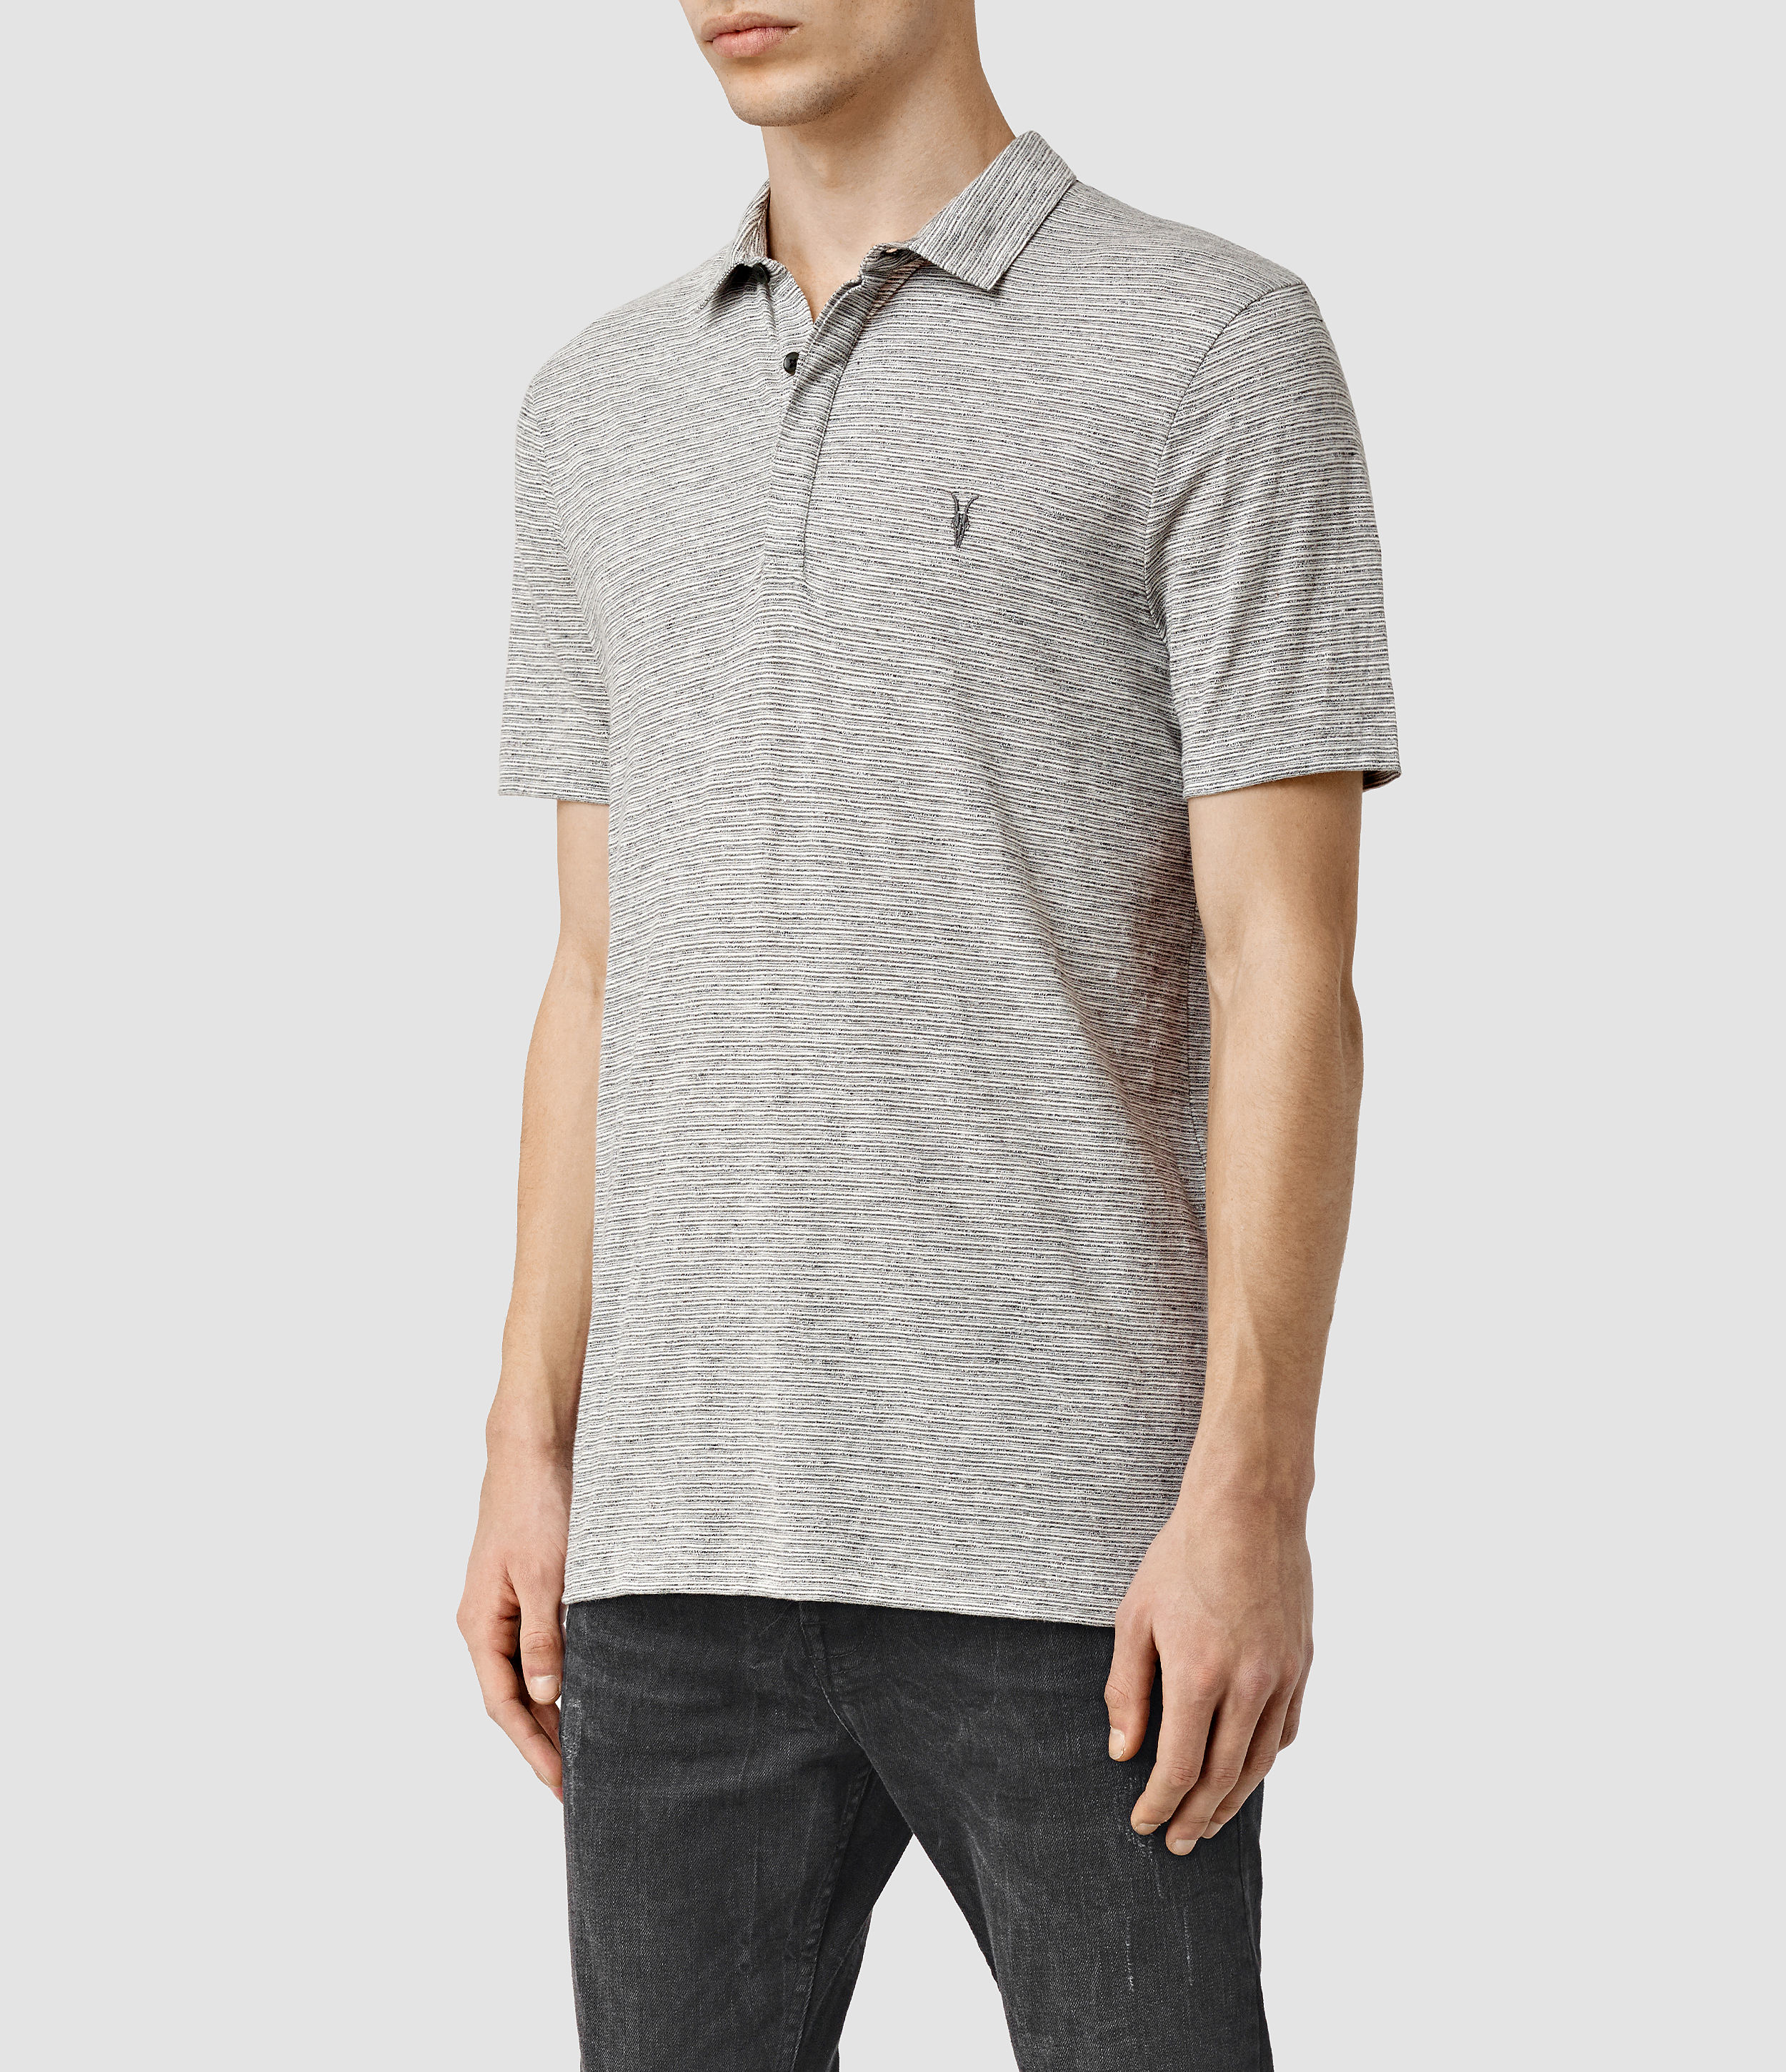 Lyst Allsaints Acer Polo Shirt Usa Usa In Gray For Men